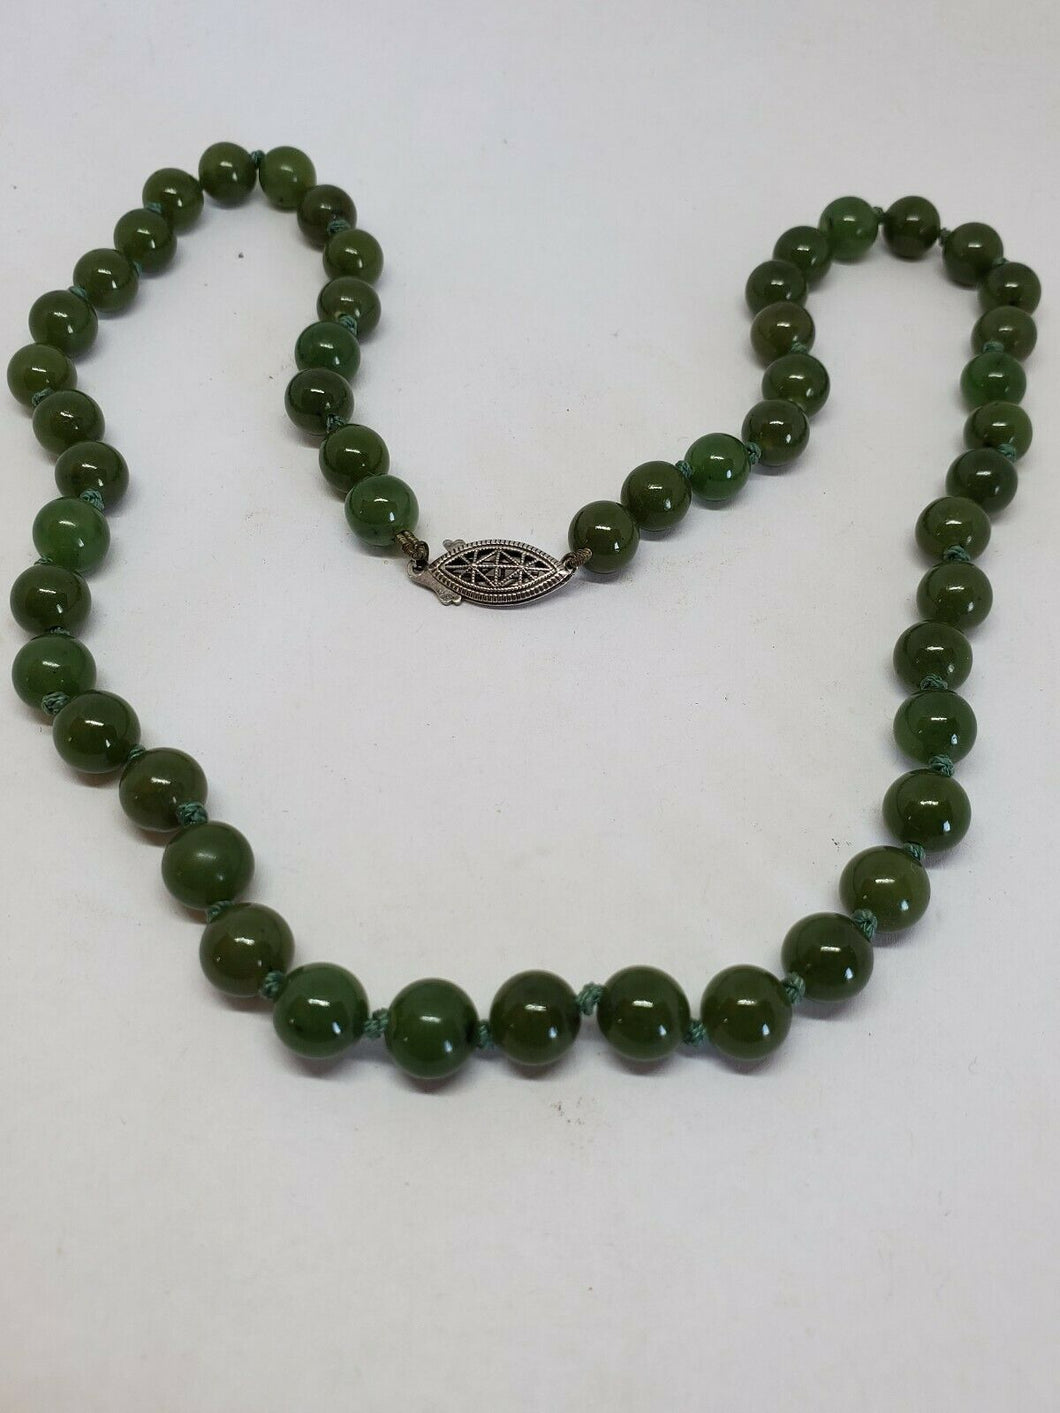 Vintage Sterling Silver Green Jade Hand Knotted Beaded Strand Necklace 19